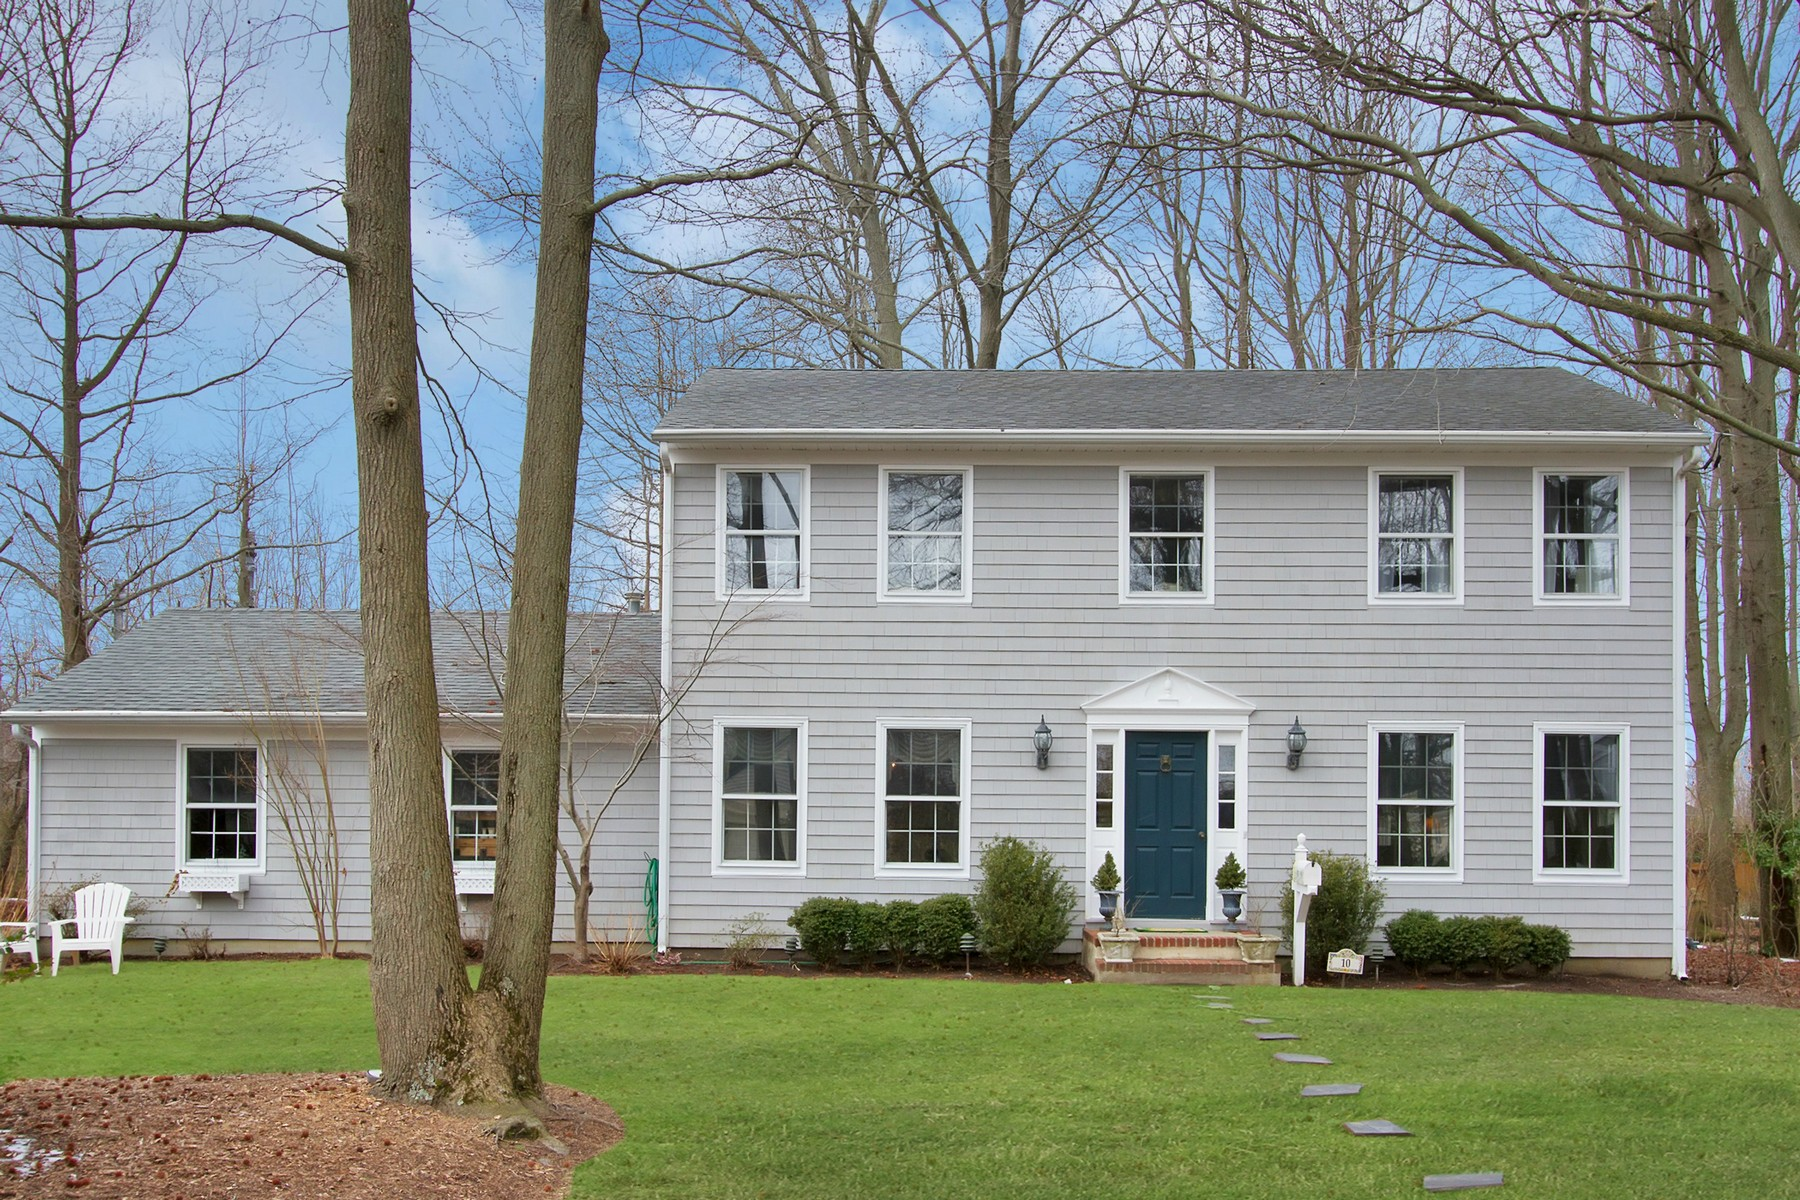 Single Family Home for Sale at The perfect home is a means of self-expression 10 Rossiter Place Oceanport, New Jersey 07757 United States